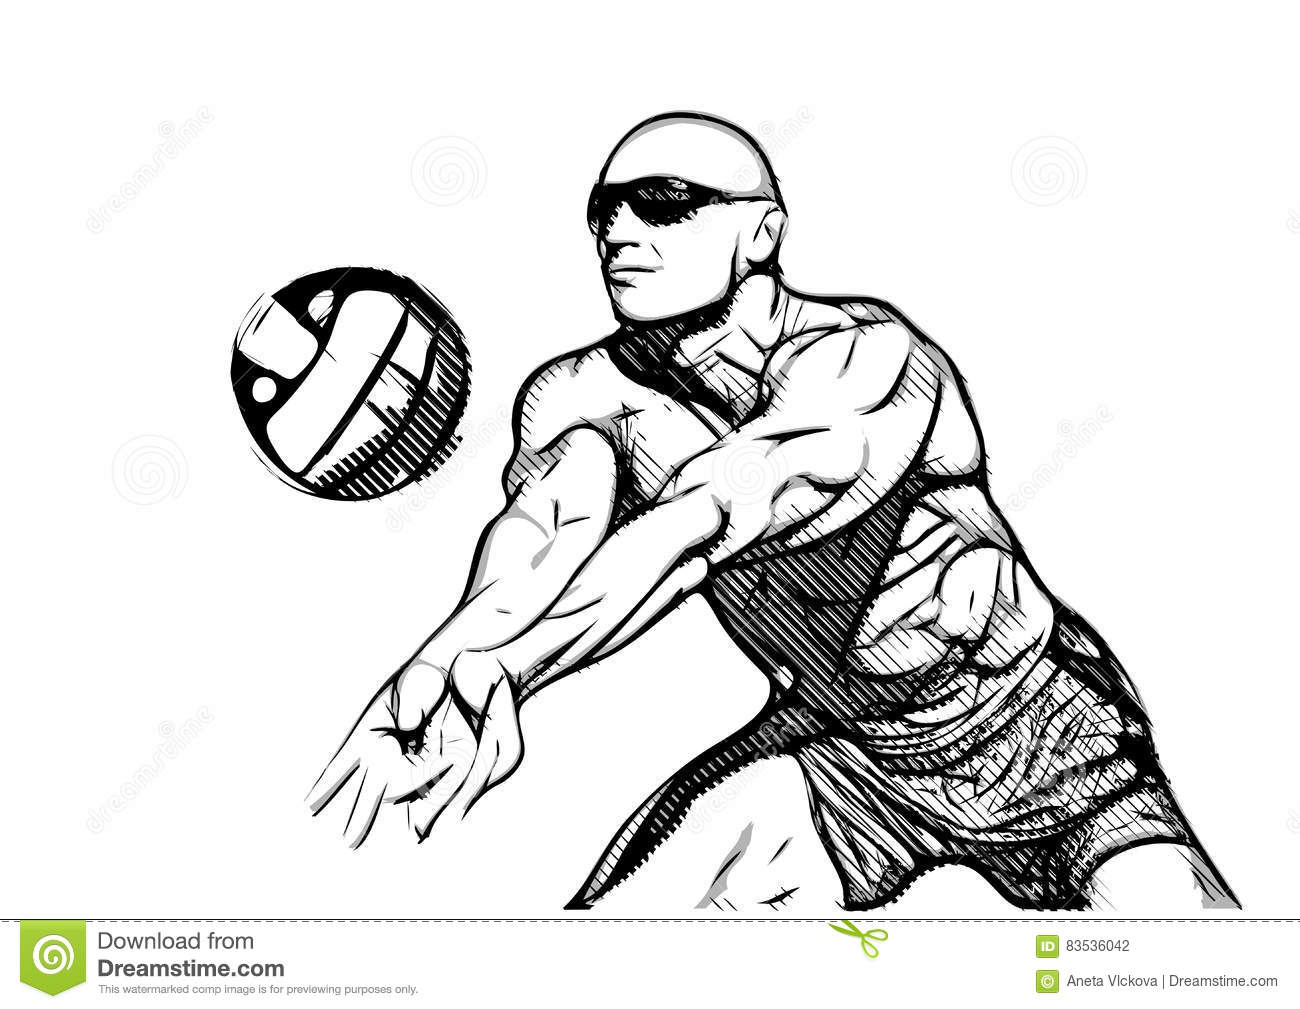 Abstract Design Of A Beach Volleyball Player Vector Image: Beach Volleyball Player In Action Stock Vector